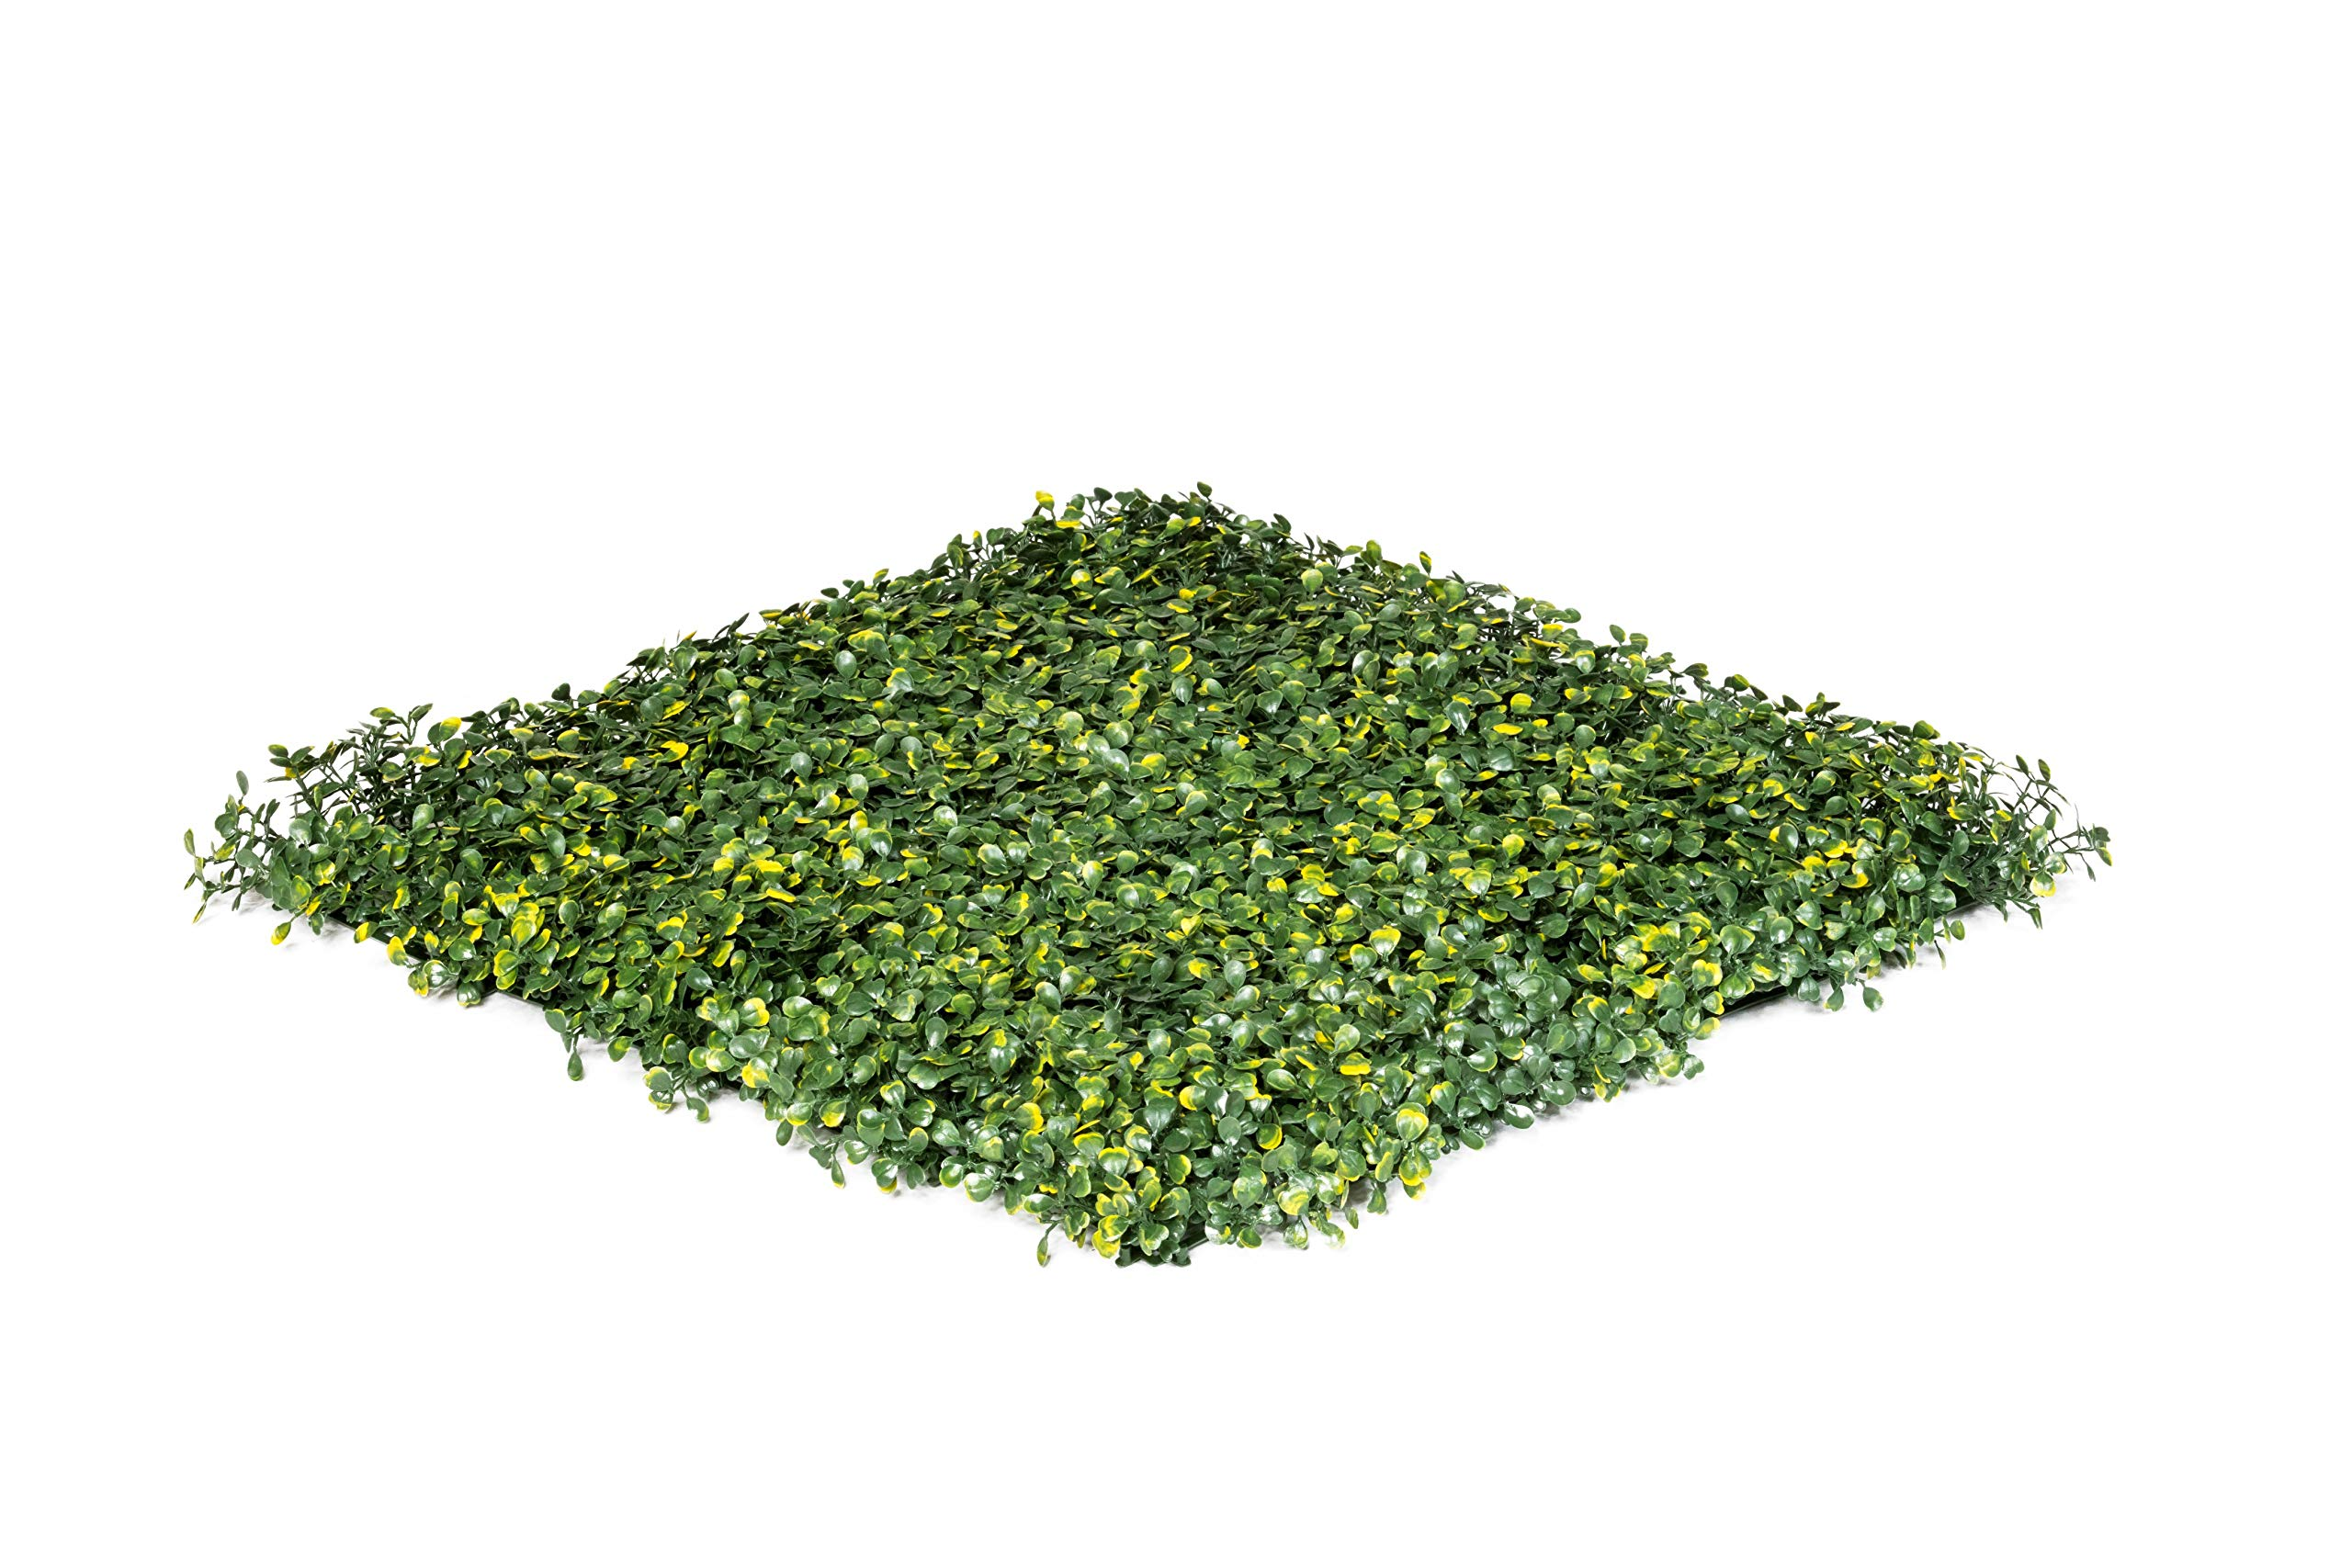 UltraHedge Artificial Boxwood Hedge | Decorative Wall Greenery Fence Covering | Indoor and Outdoor 20'' x 20'' Panel Small Leaves Light Green 6 Pack